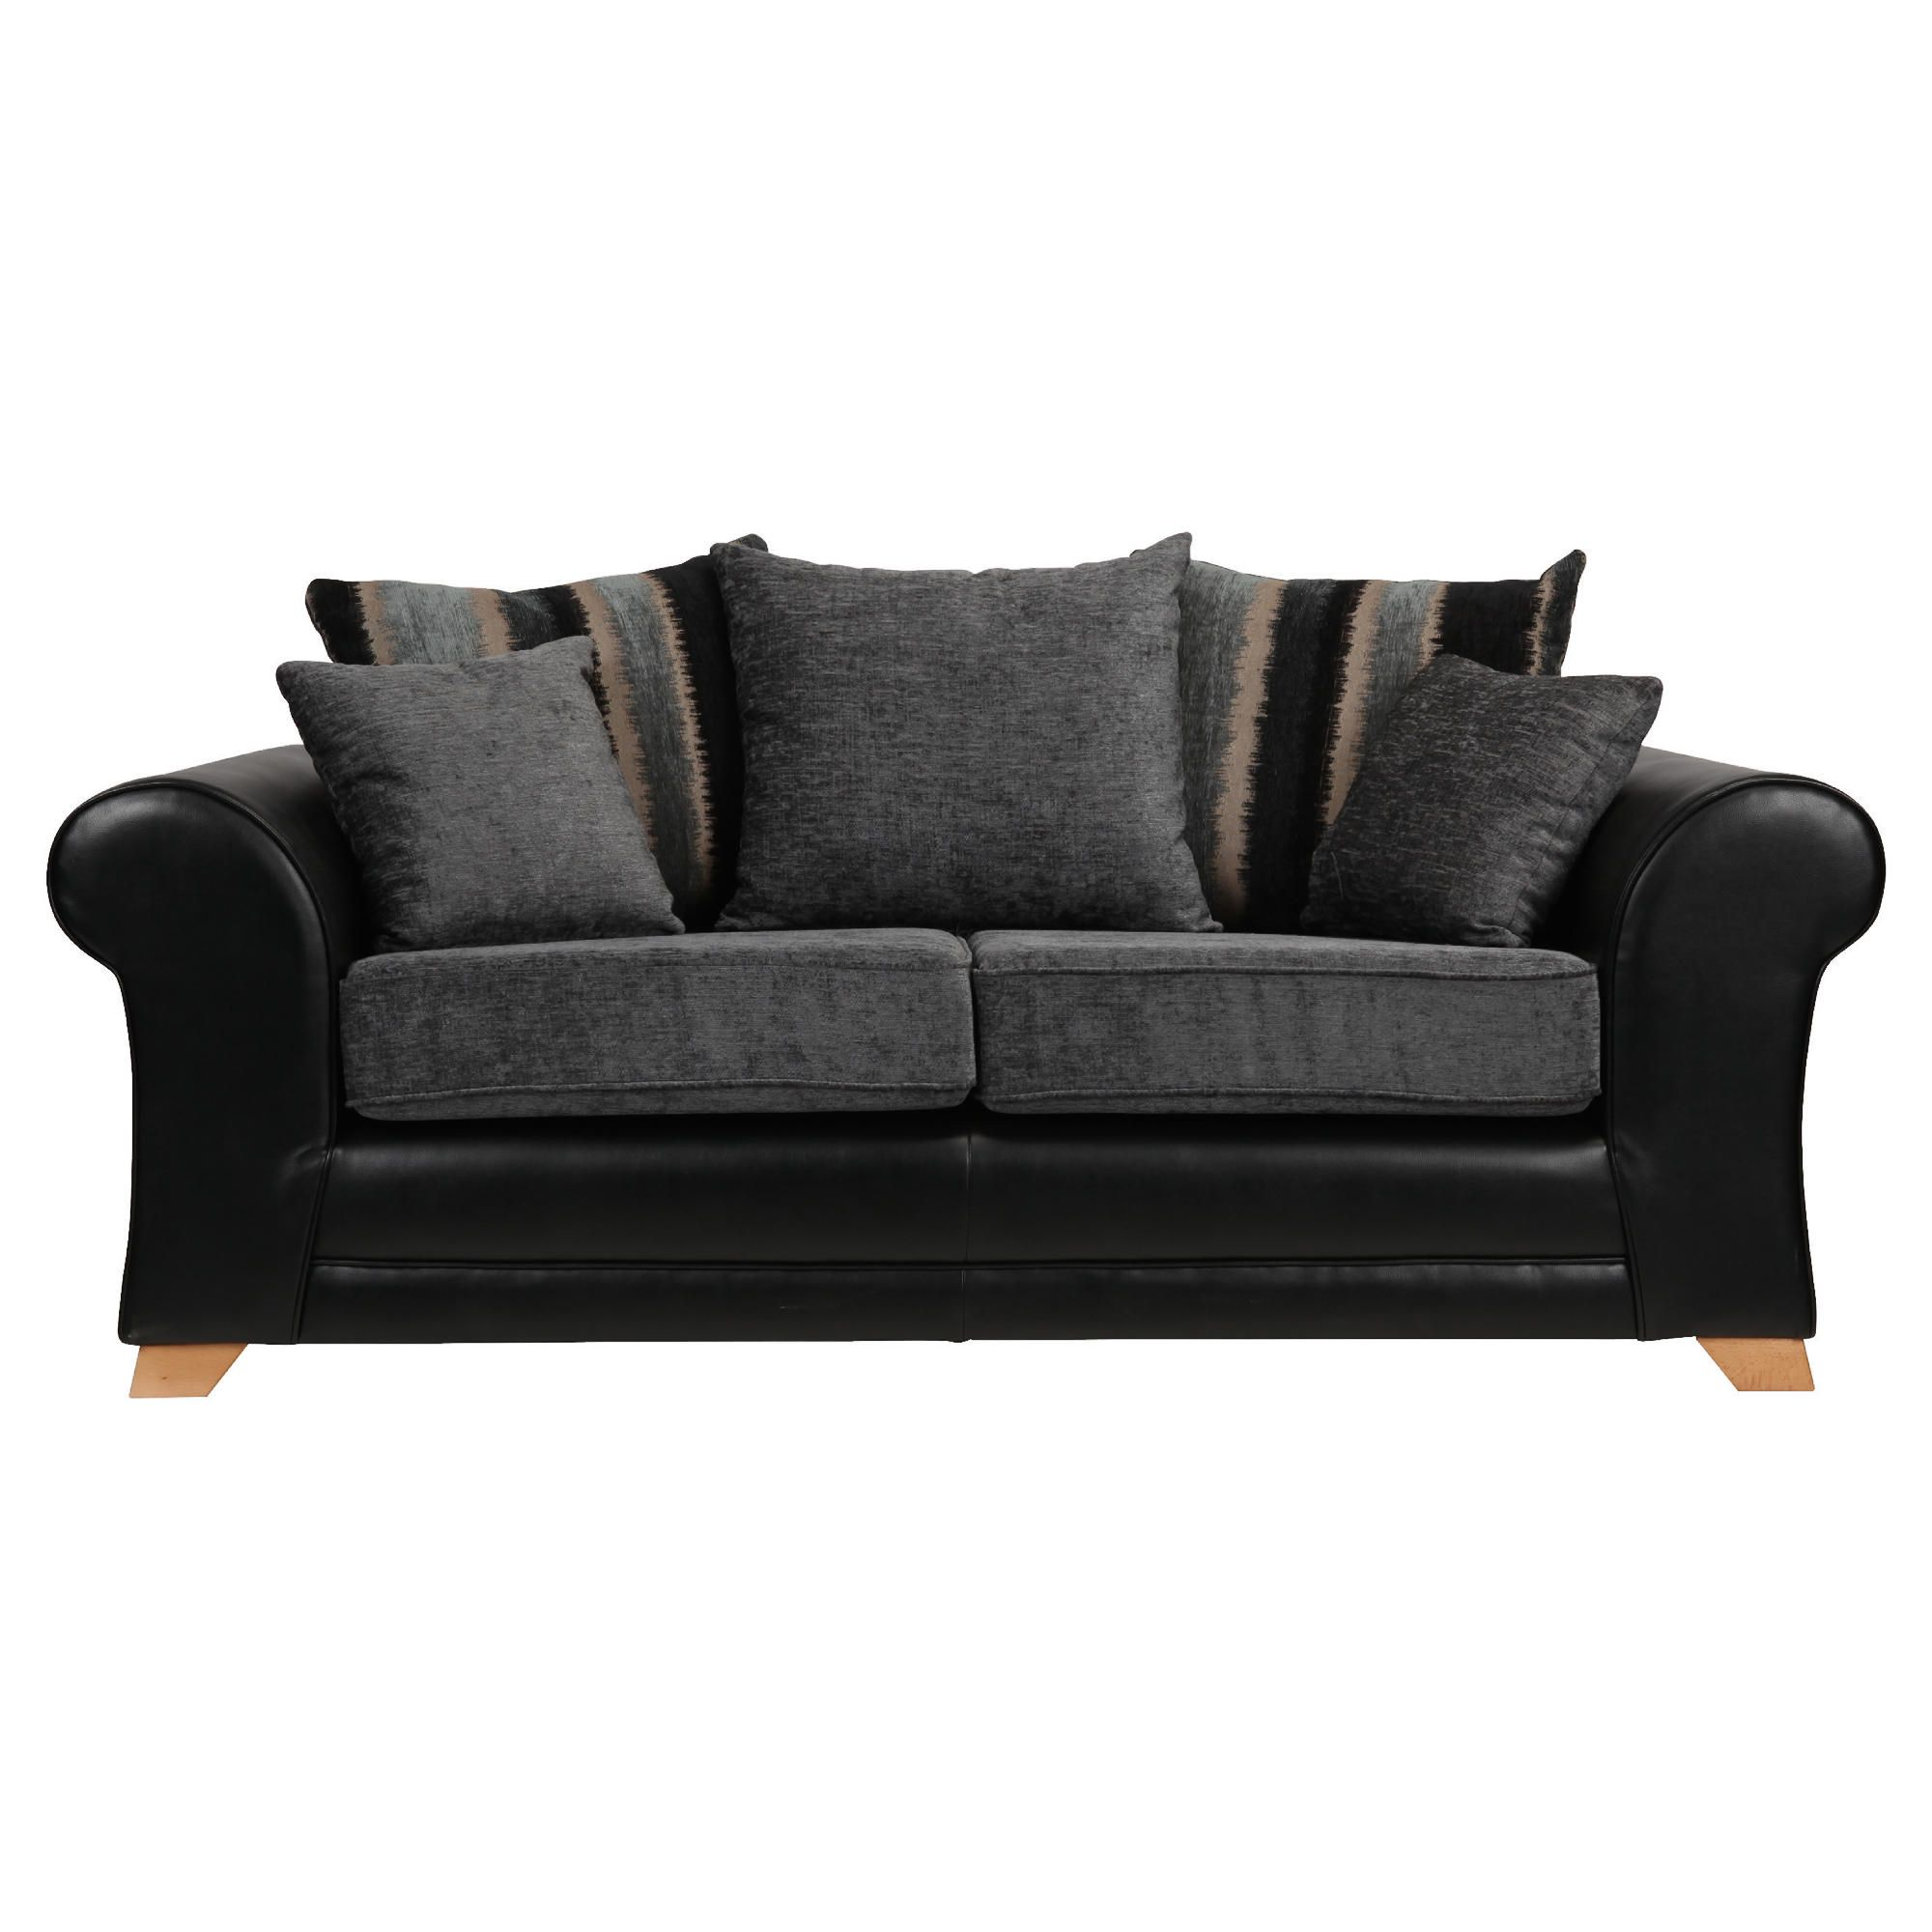 Lima fabric mix medium sofa black and charcoal at Tesco Direct